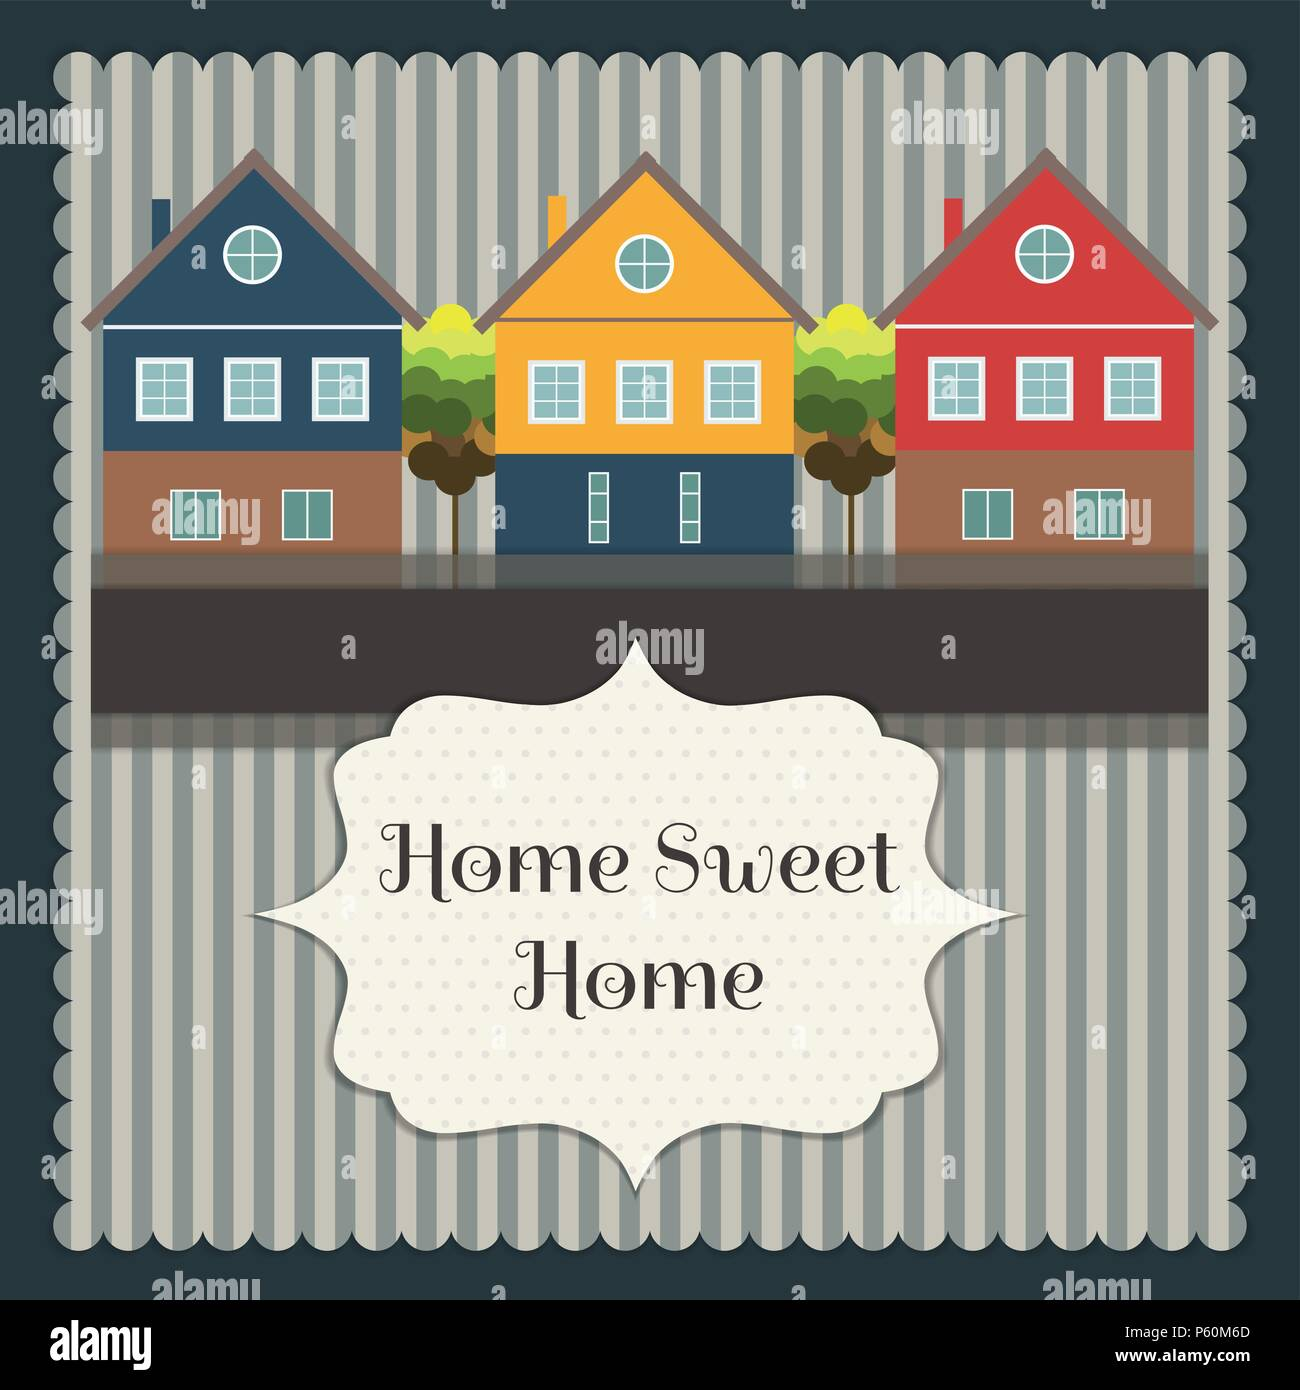 Abstdact  Real Estate Card With Colorful Houses. Home Sweet Home - Stock Vector